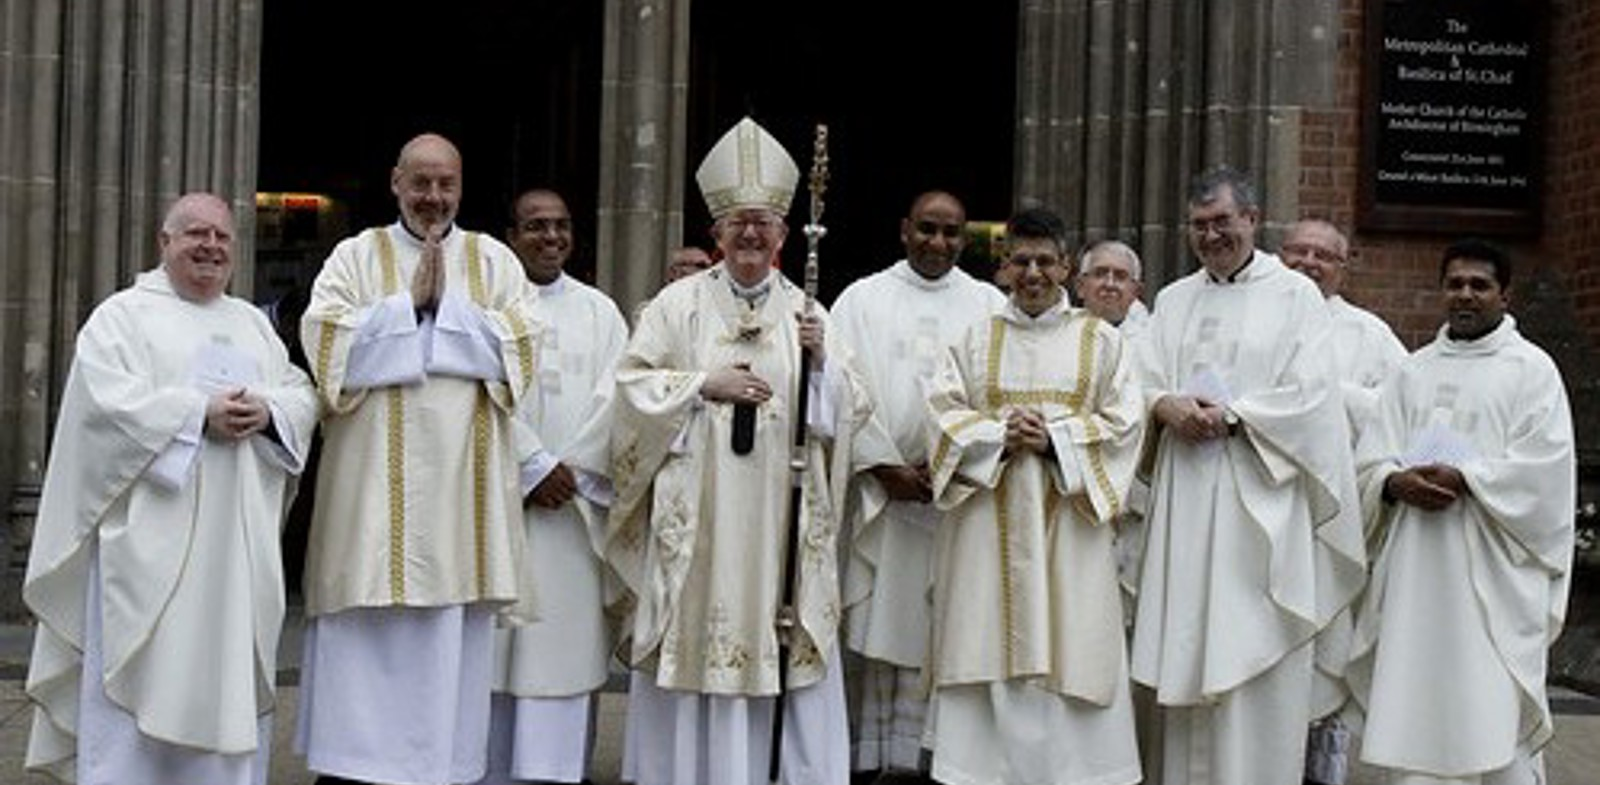 Permanent Deacons ordained at St Chad's Cathedral